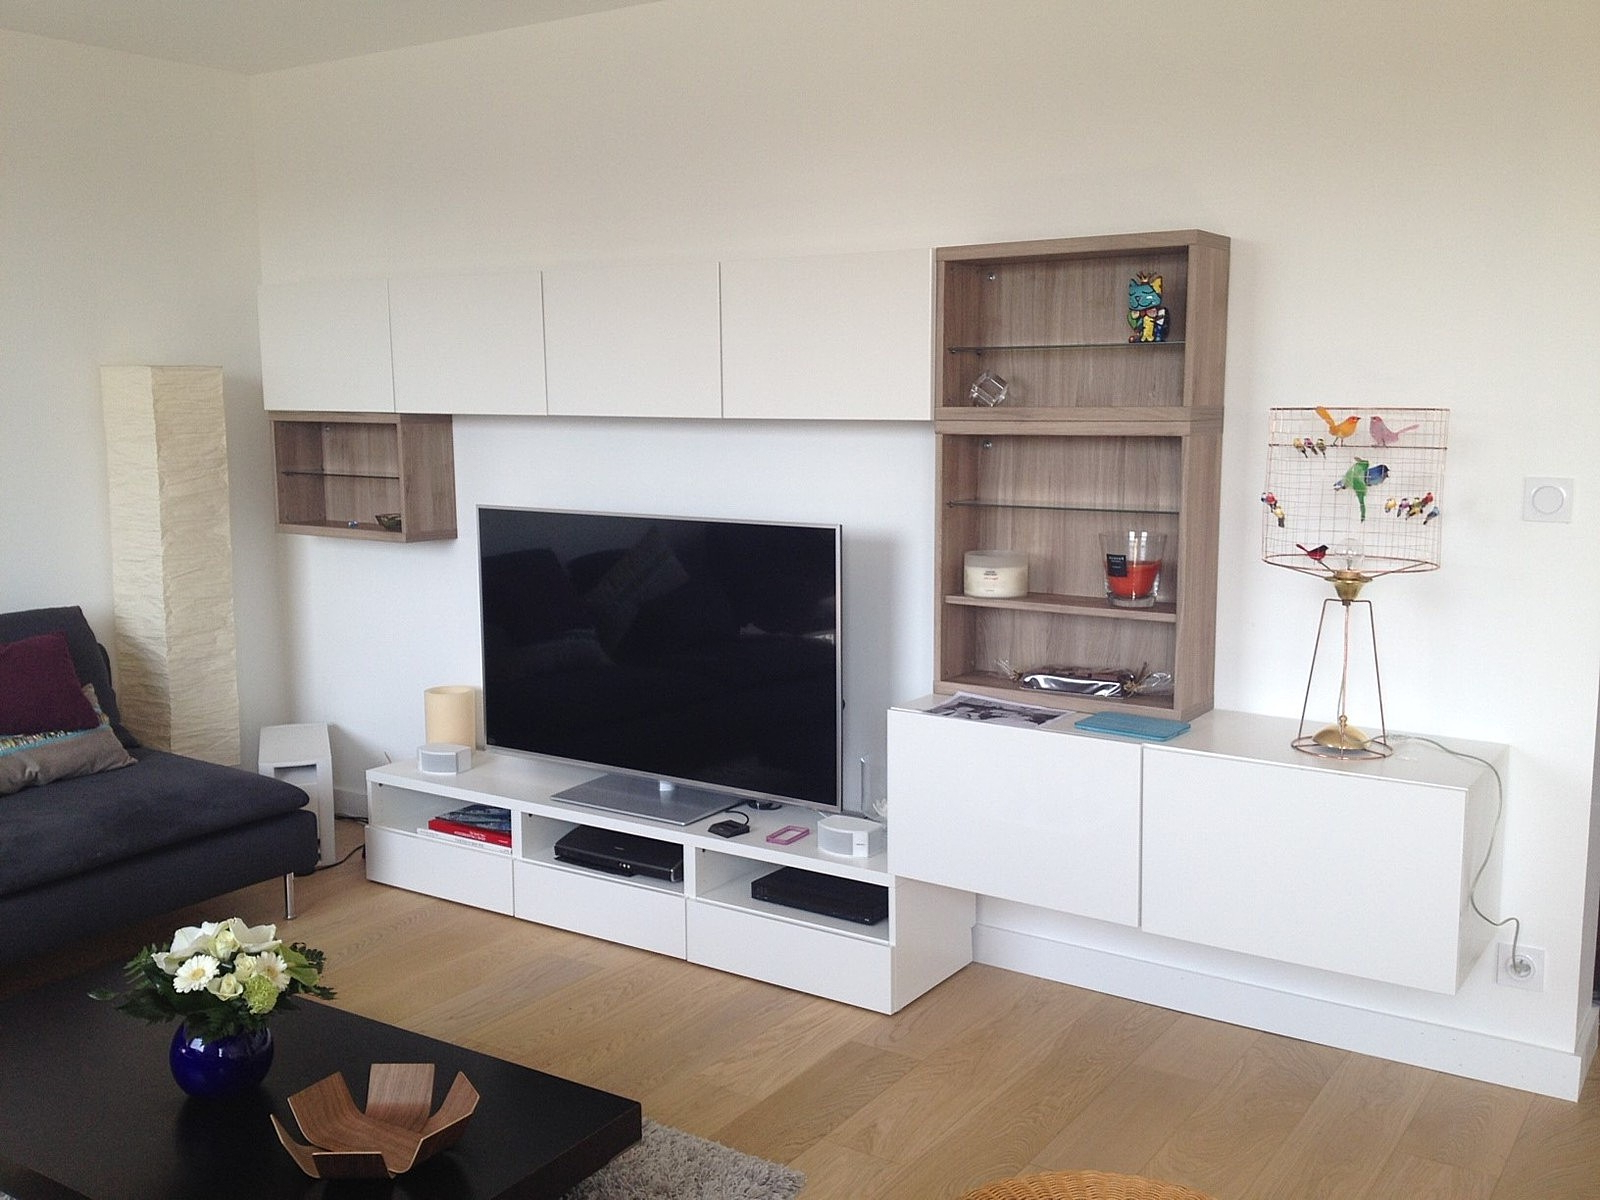 Well Known Ikea Built In Tv Cabinets Within Wall Stand Ikea Shelf Singapore Mounting Sektion Cabinets Lack Tv (Gallery 18 of 20)